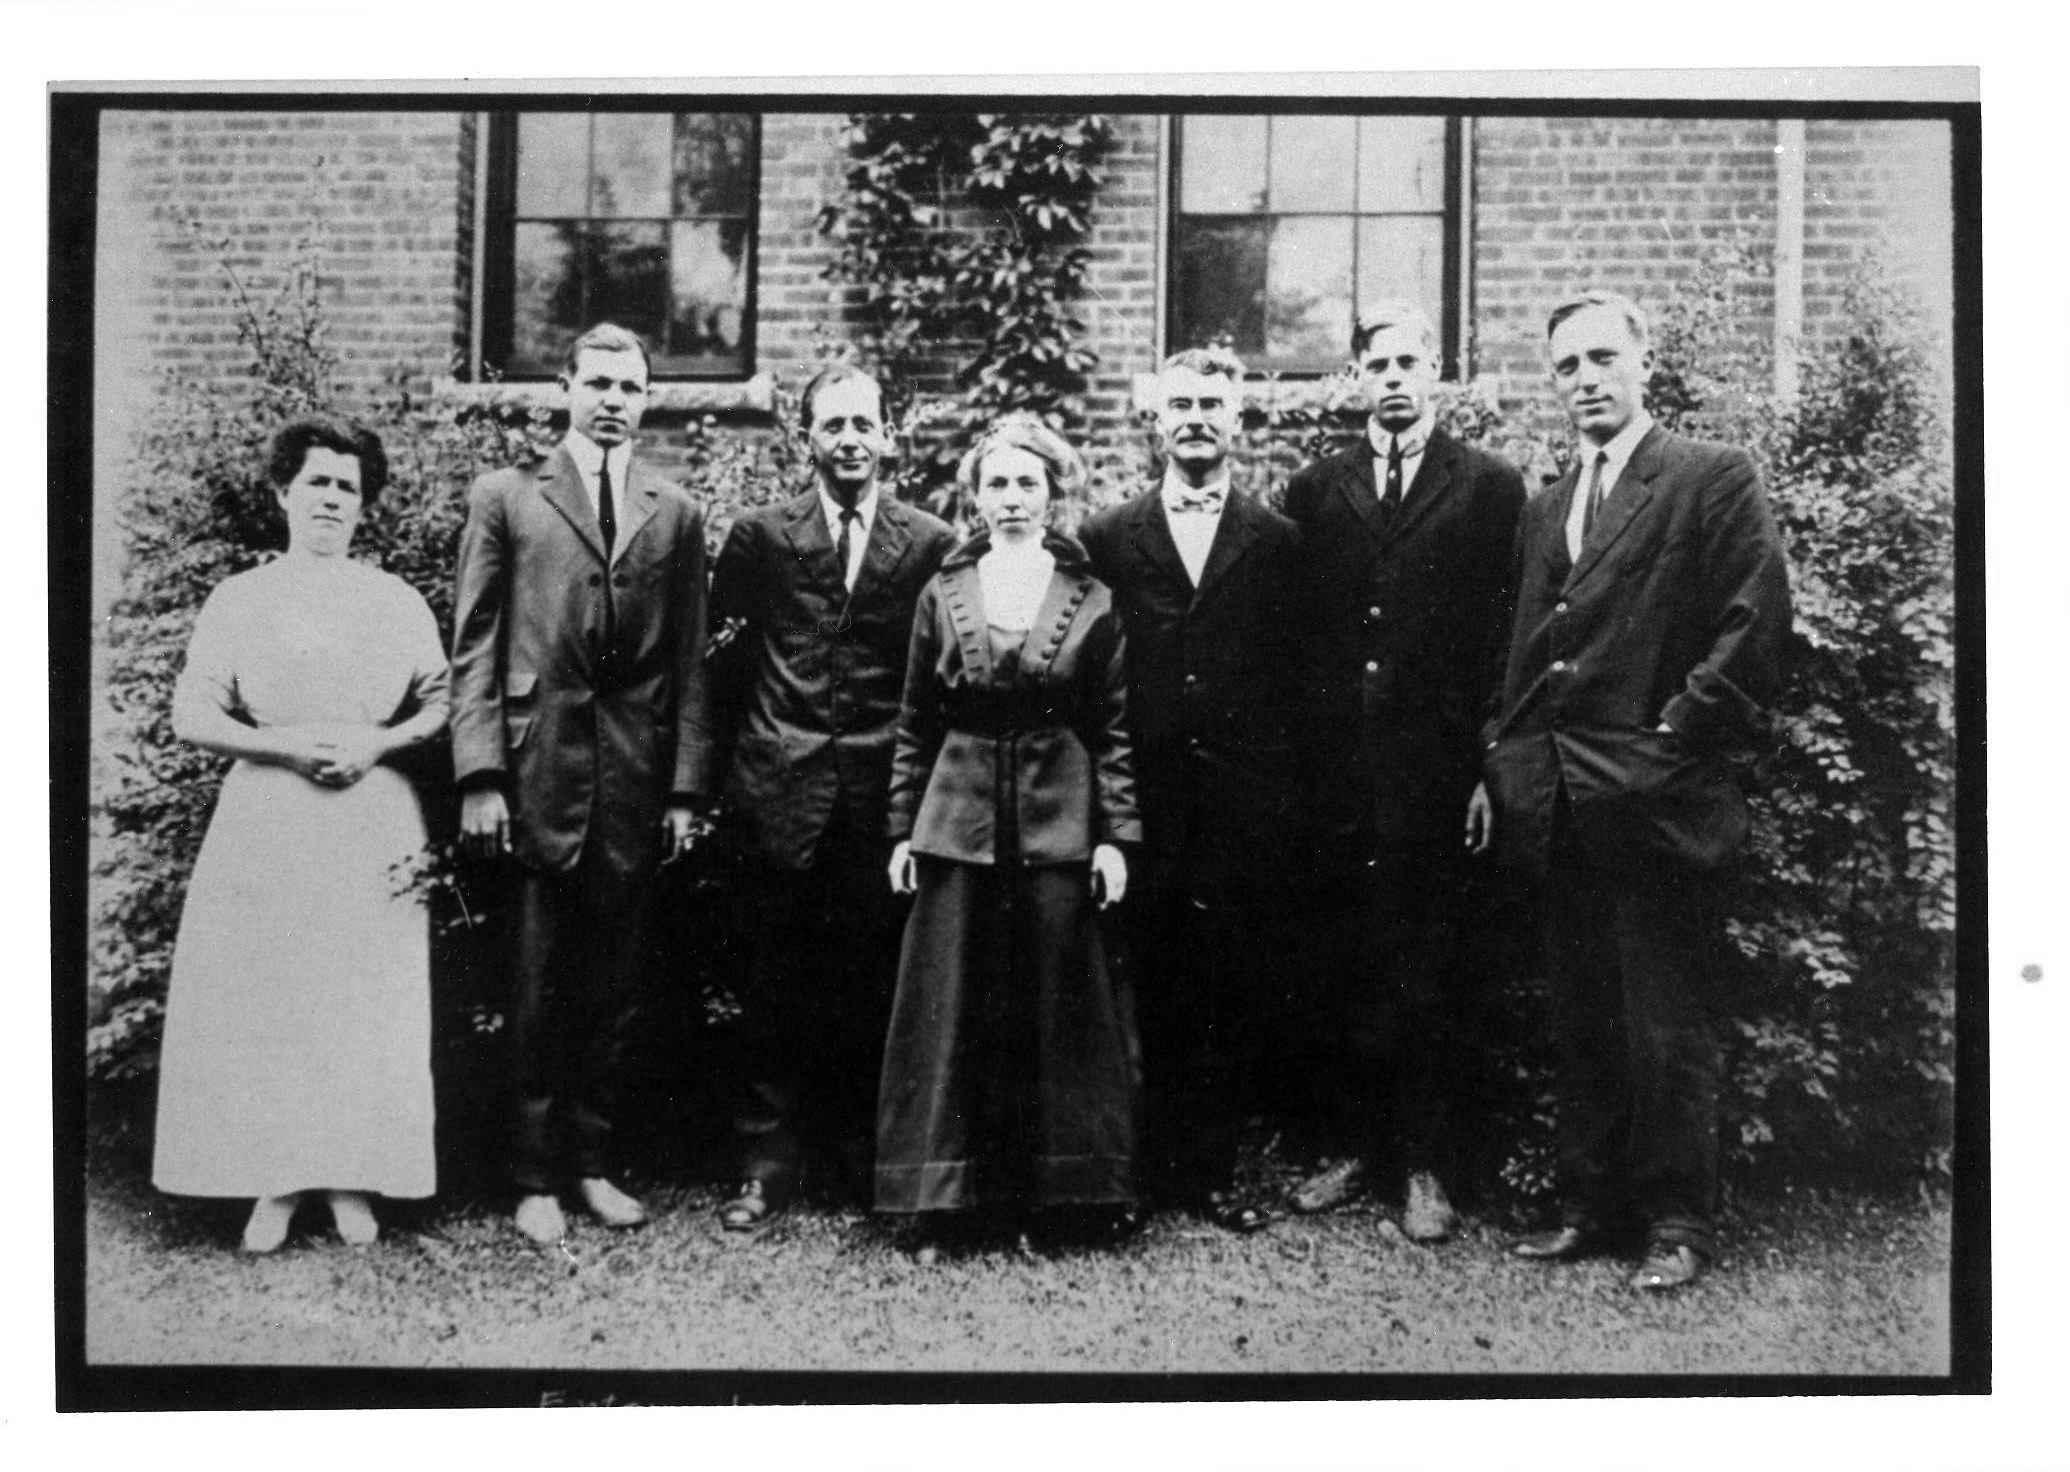 Edith Patch and colleagues